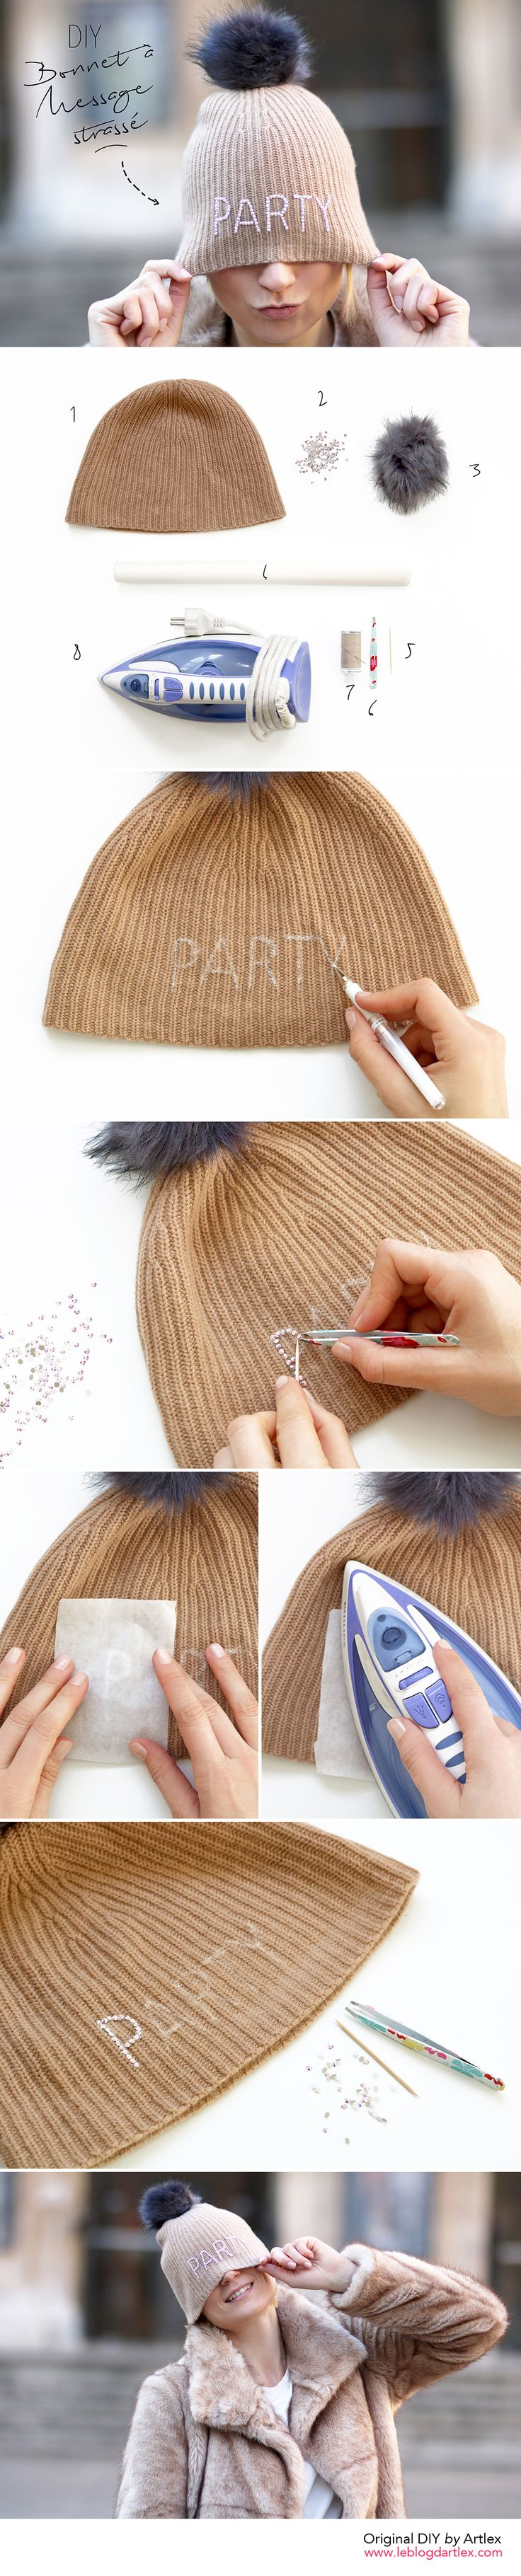 DIY bonnet à message // DIY bonnet pompon // Wool cap DIY // Swarovski DIY // Blog DIY Mode Lyon Artlex x @123modefemme